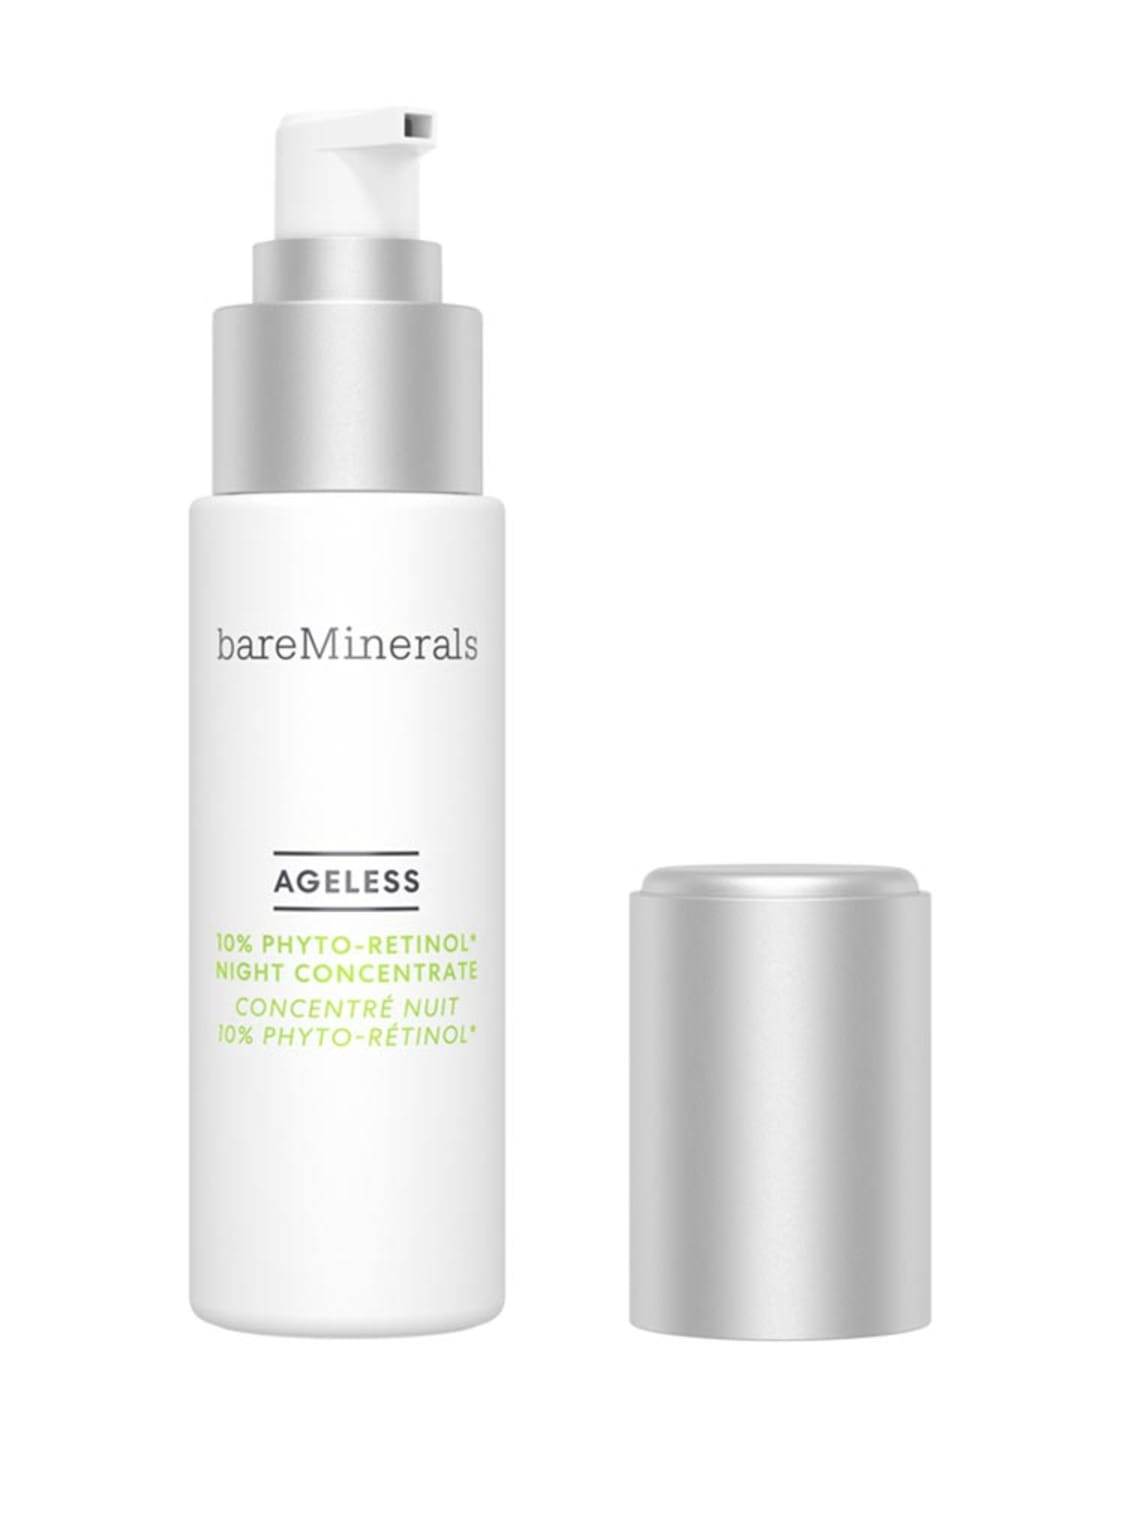 Image of Bareminerals Ageless 10% Phyto-Retinol Night Concentrate 30 ml